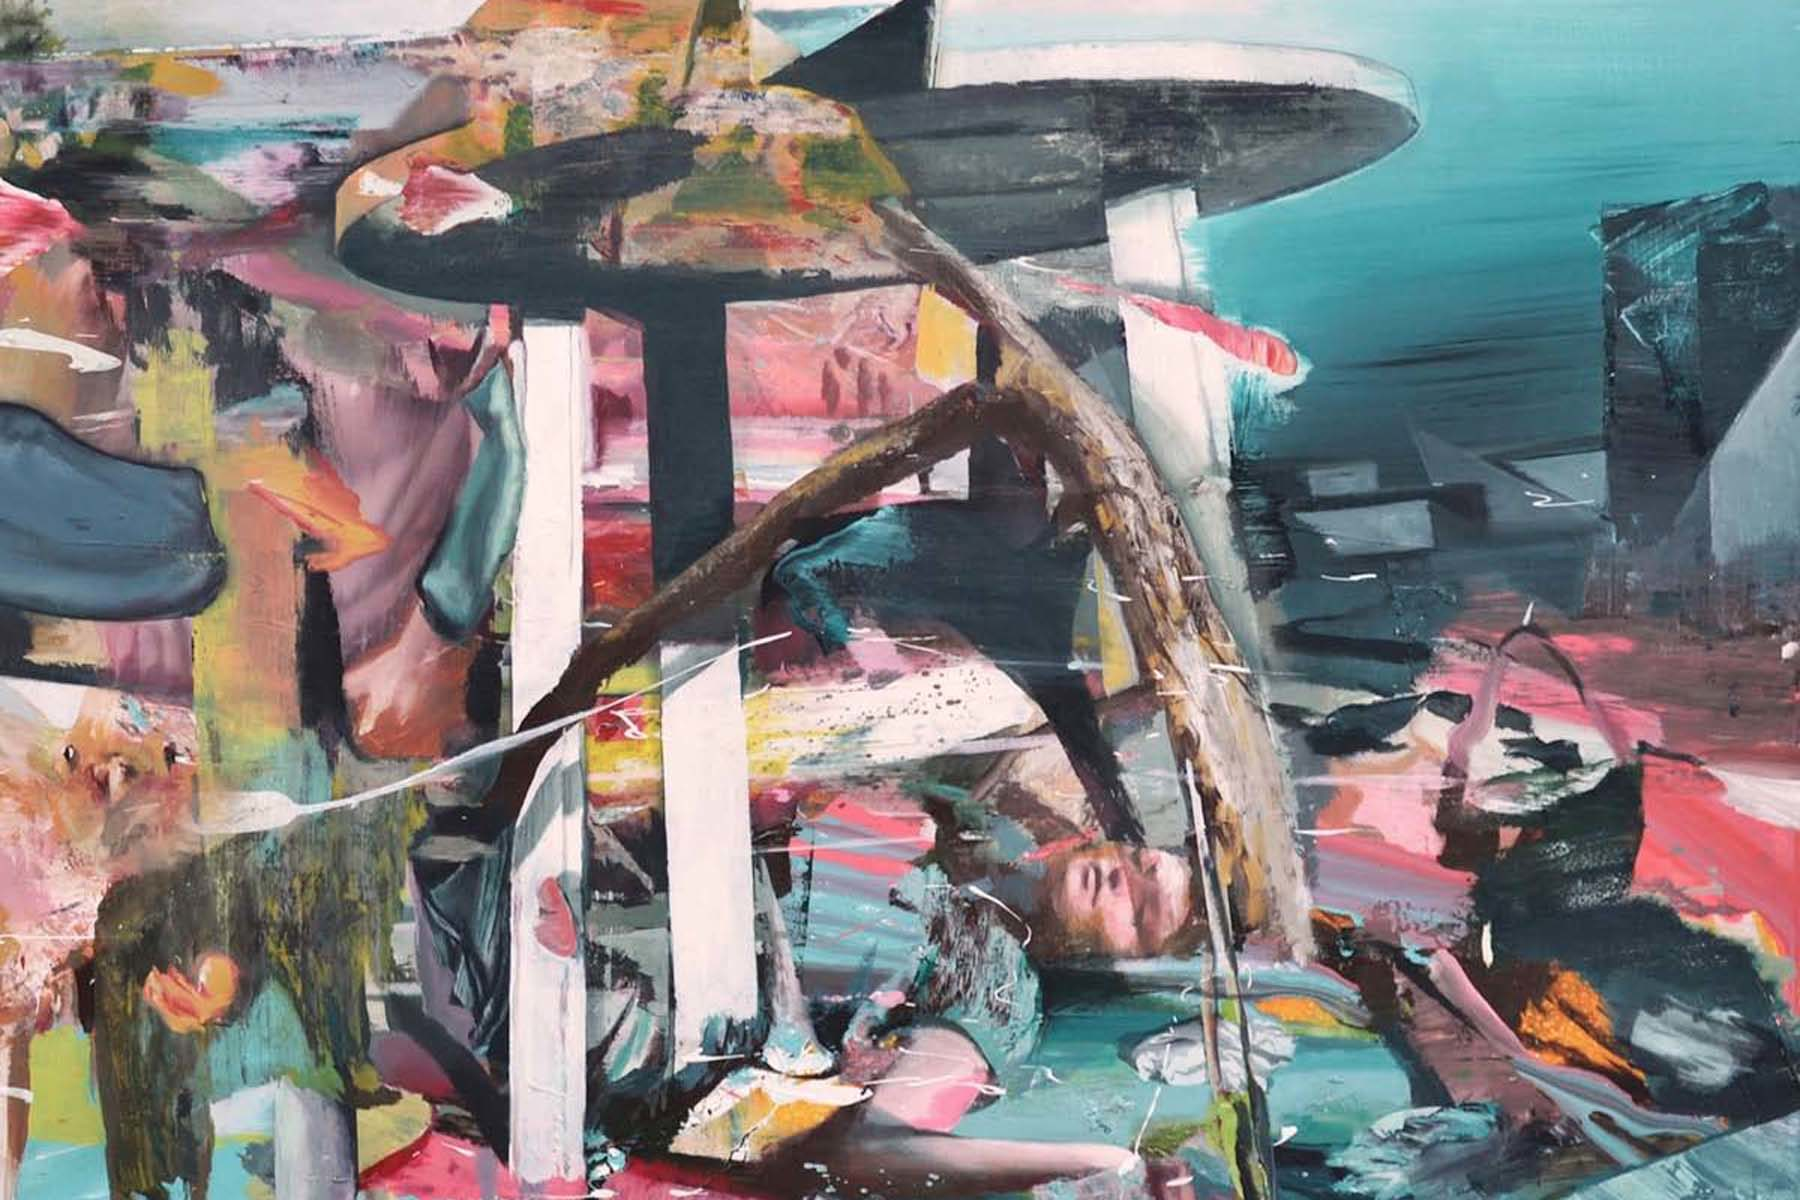 Giuseppe Gonella, Untitled, 2011, acrylic on canvas, 150 x 150 cm